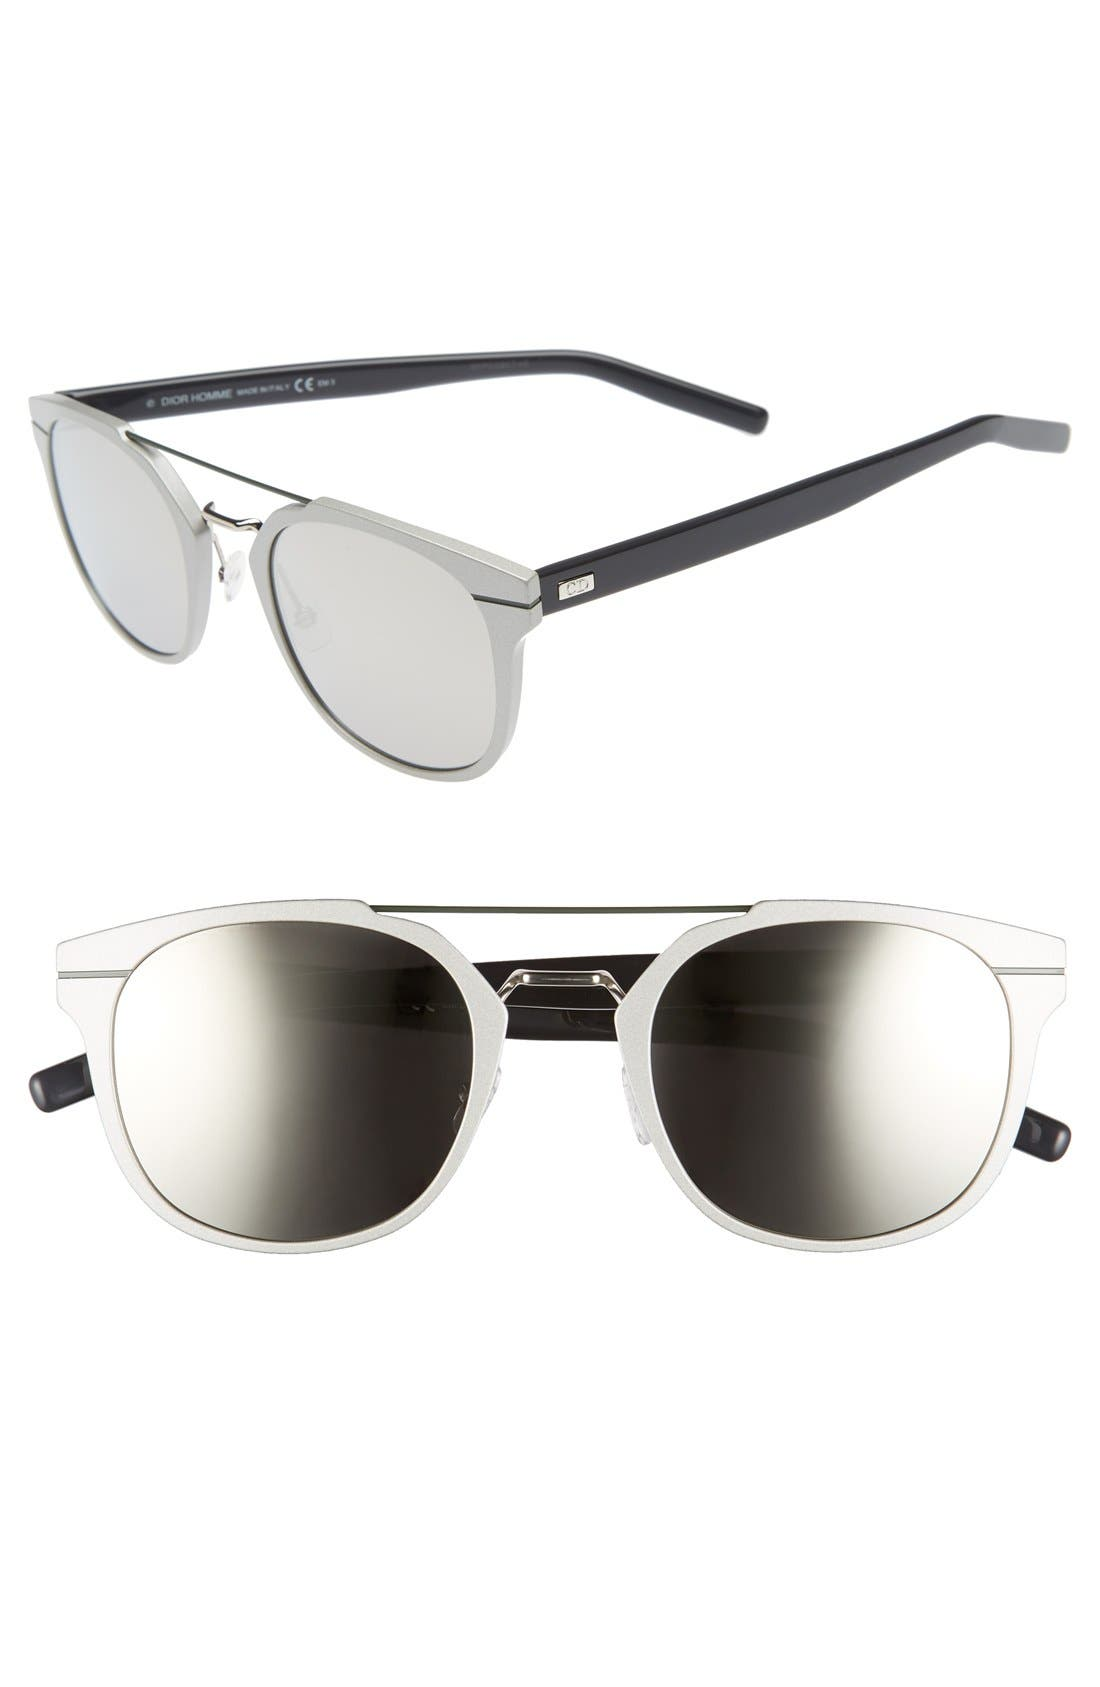 Main Image - Dior Homme 'AL 13.5S' 52mm Sunglasses